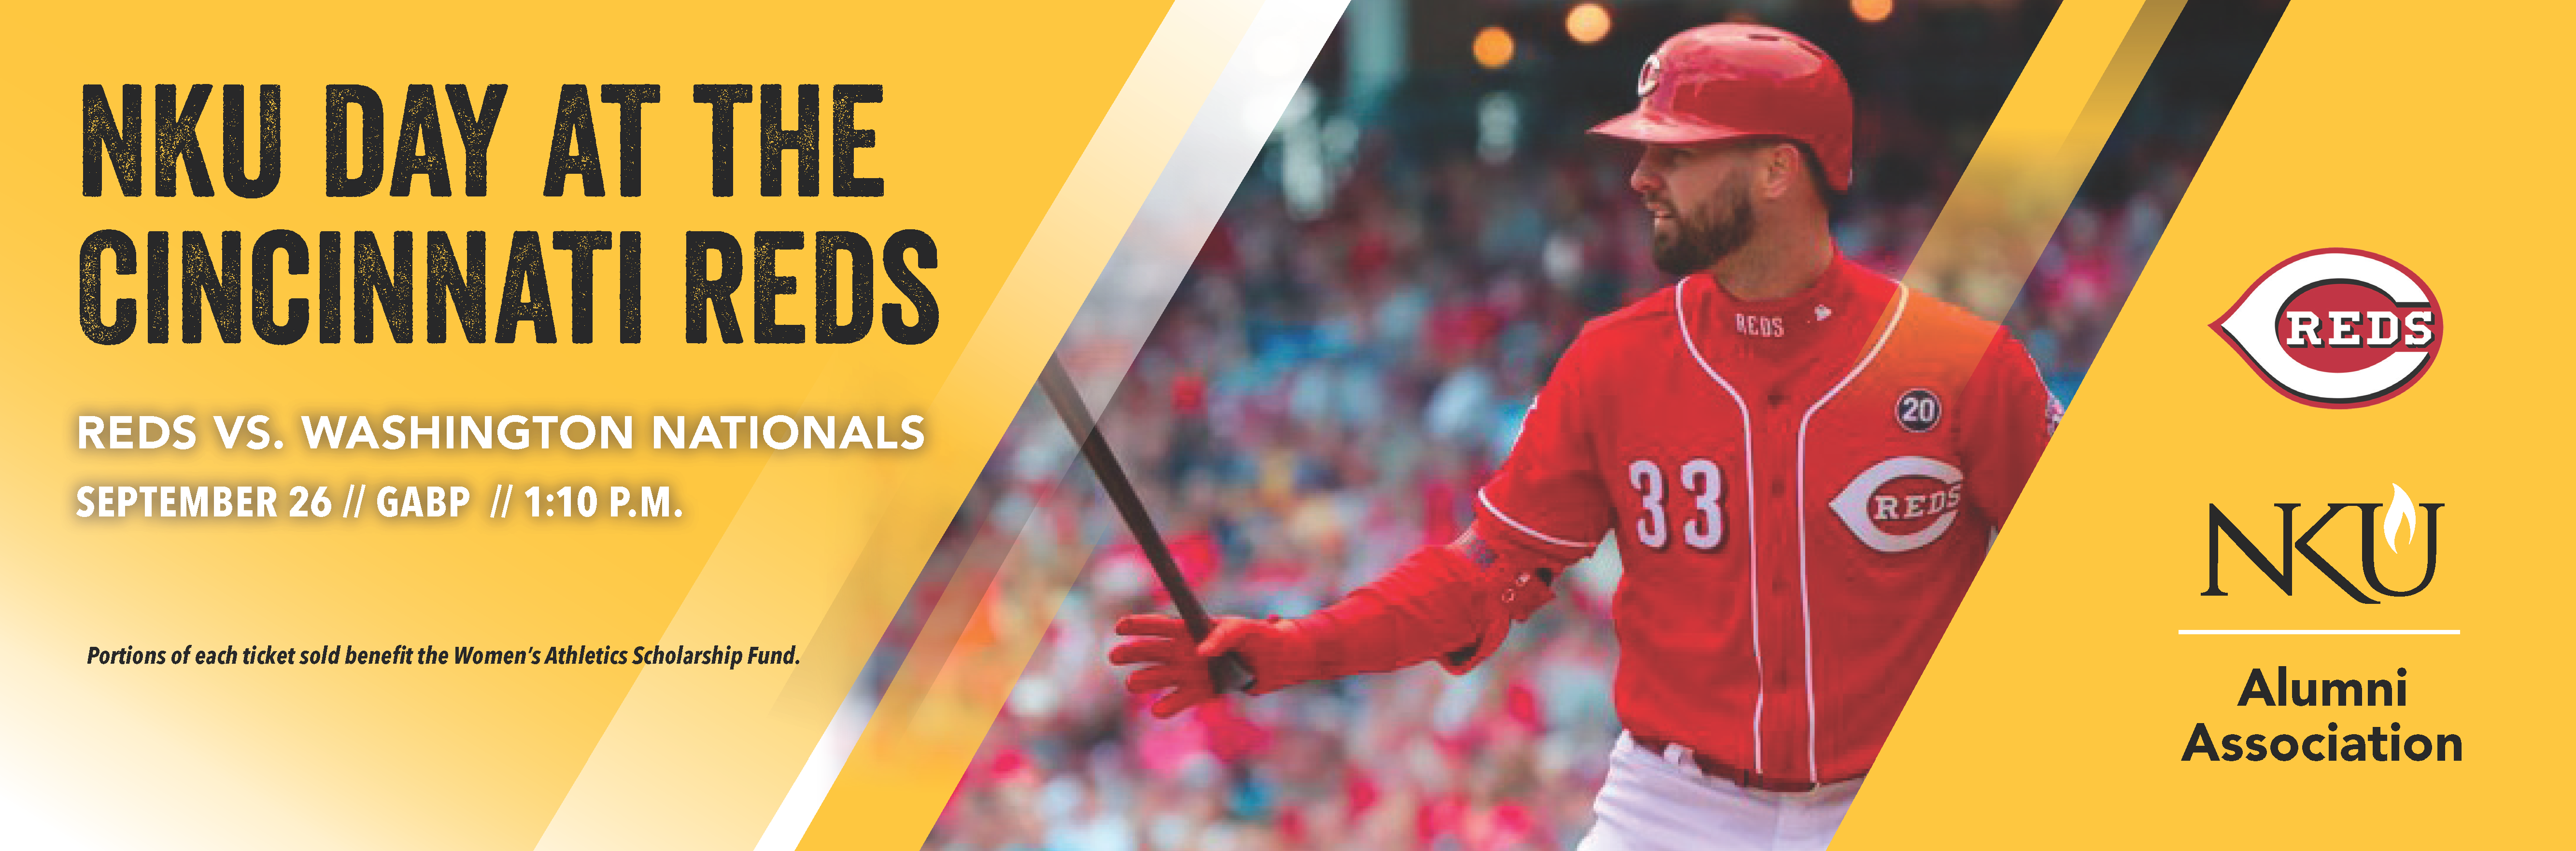 NKU day at the Cincinnati Reds. Reds vs. the Washington Nationals. Spet. 26 at Great American Ball Park at 1:10 p.m. Portions of each ticket sold benefit the Women's Athletics Scholarship Fund.